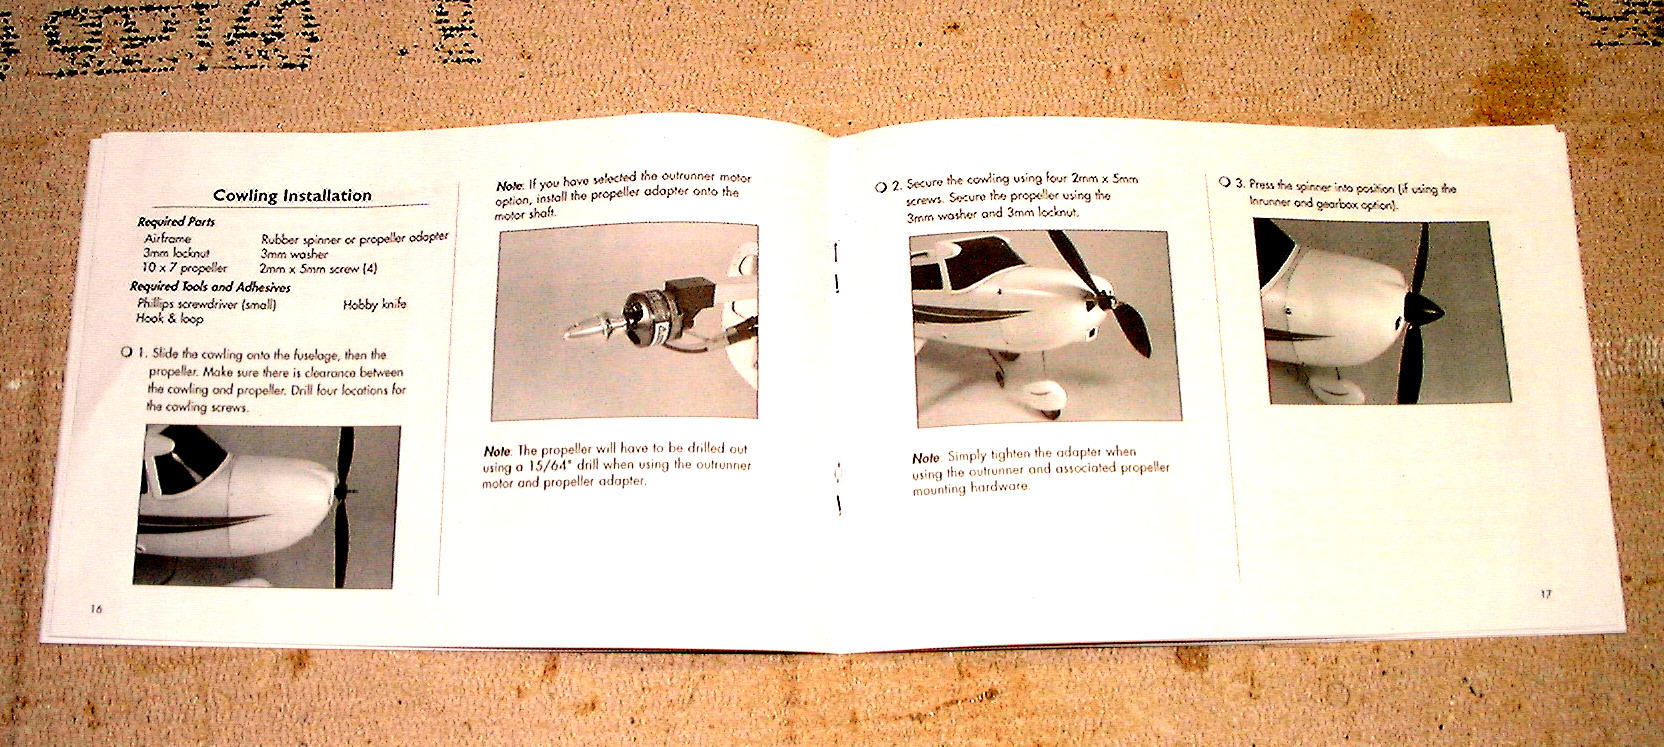 Very clear, step by step photo detailed instructions. This particular page shows different engine options and mounting instructions. The instructions left nothing to the imagination...or error.